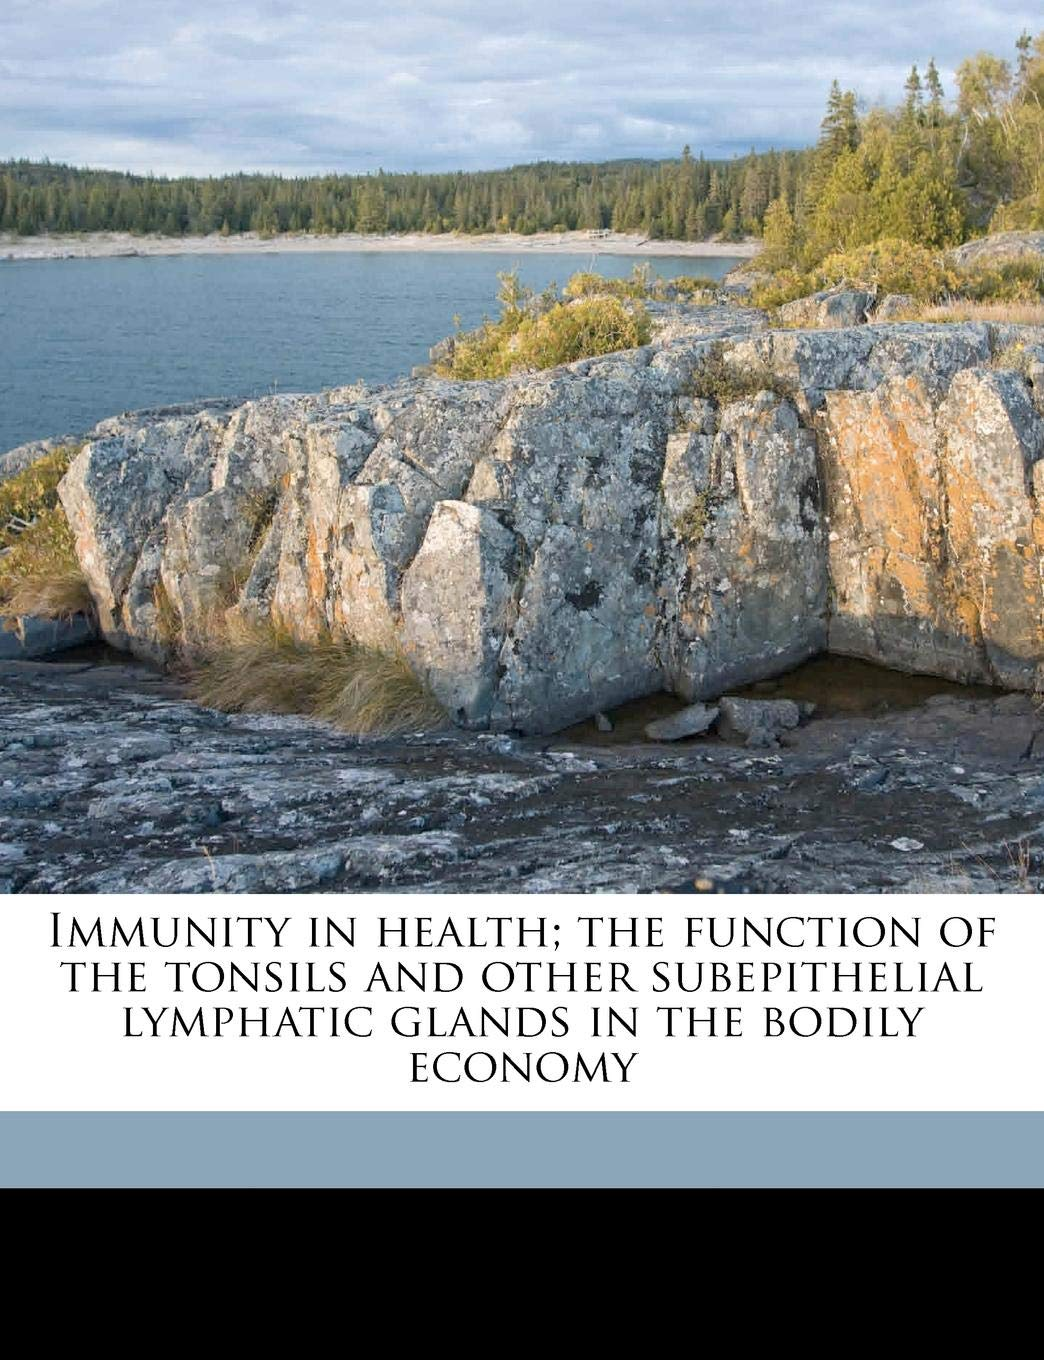 immunity in health; the function of the tonsils and other subepithelial lymphatic glands in the bodily economy - By Kenelm Hutchinson DigbyFrom the re-publisher: This is a reproduction of a book published before 1923. This book may have occasional imperfections such as missing or blurred pages, poor pictures, errant marks, etc. that were either part of the original artifact, or were introduced by the scanning process.We believe this work is culturally important, and despite the imperfections, have elected to bring it back into print as part of our continuing commitment to the preservation of printed works worldwide. We appreciate your understanding of the imperfections in the preservation process, and hope you enjoy this valuable book.